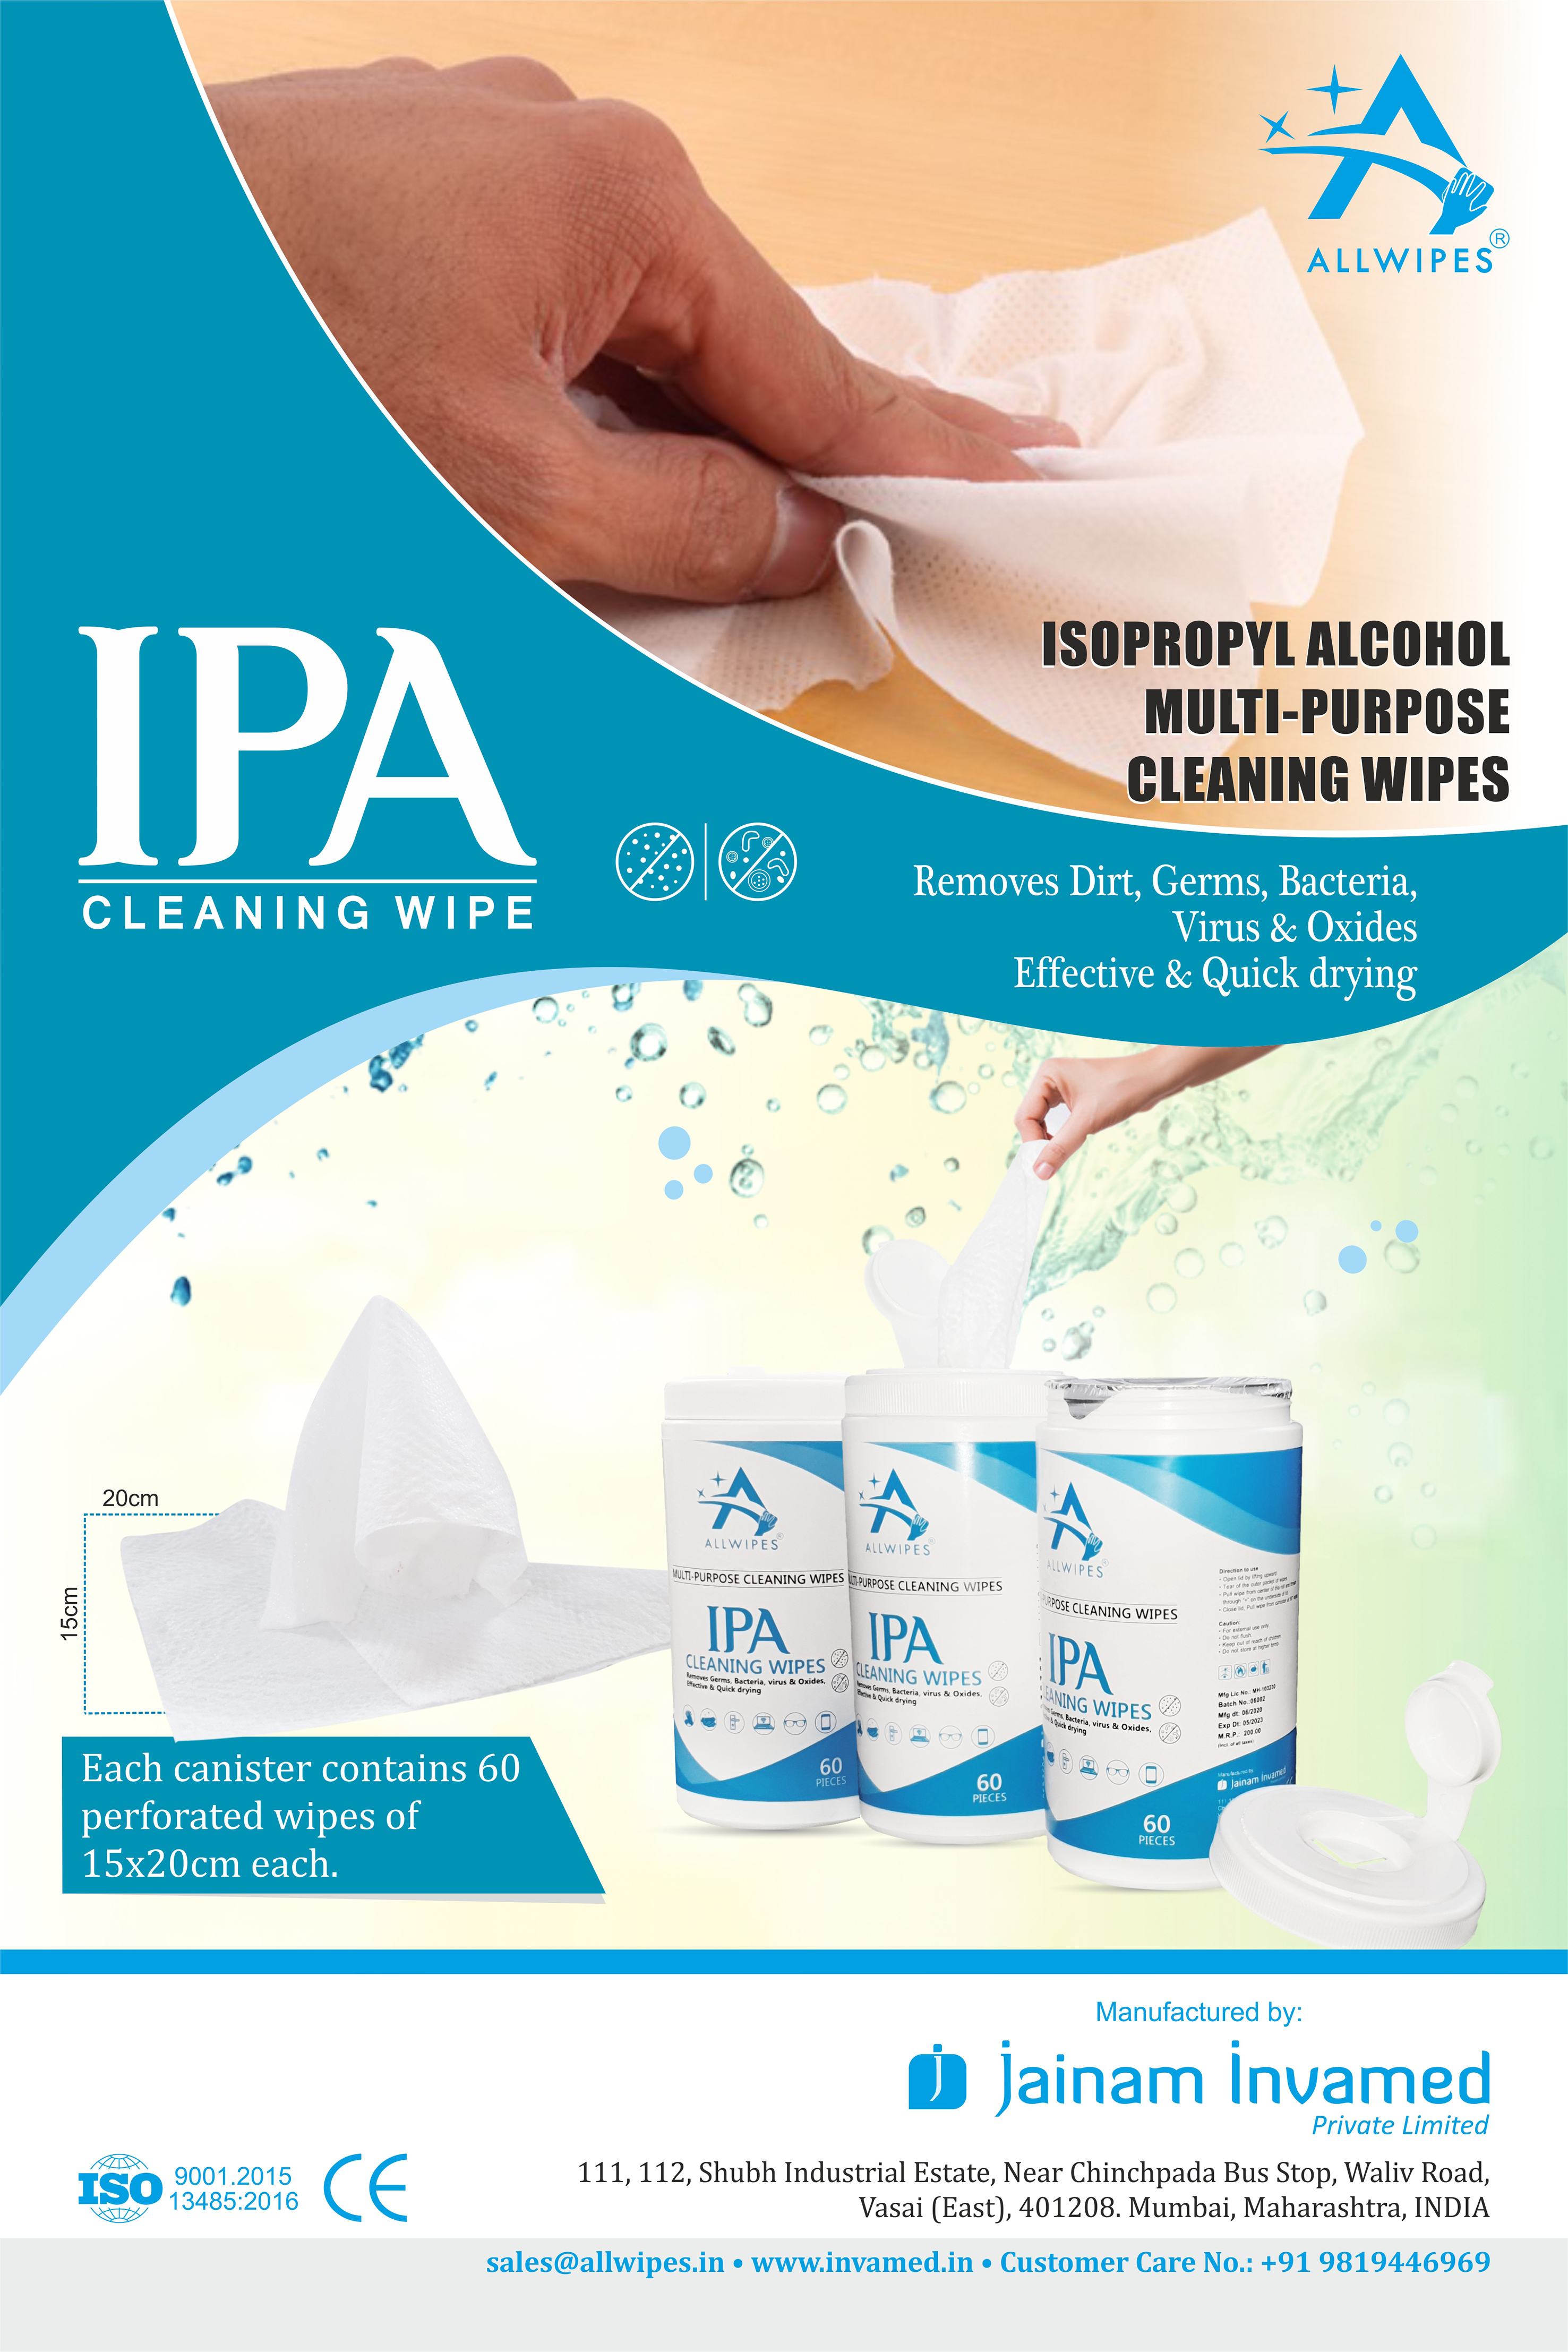 ALLWIPES IPA Multipurpose Wipes Canister Wet Wipes - 60Pcs in one Canister - 15x20cm wipes